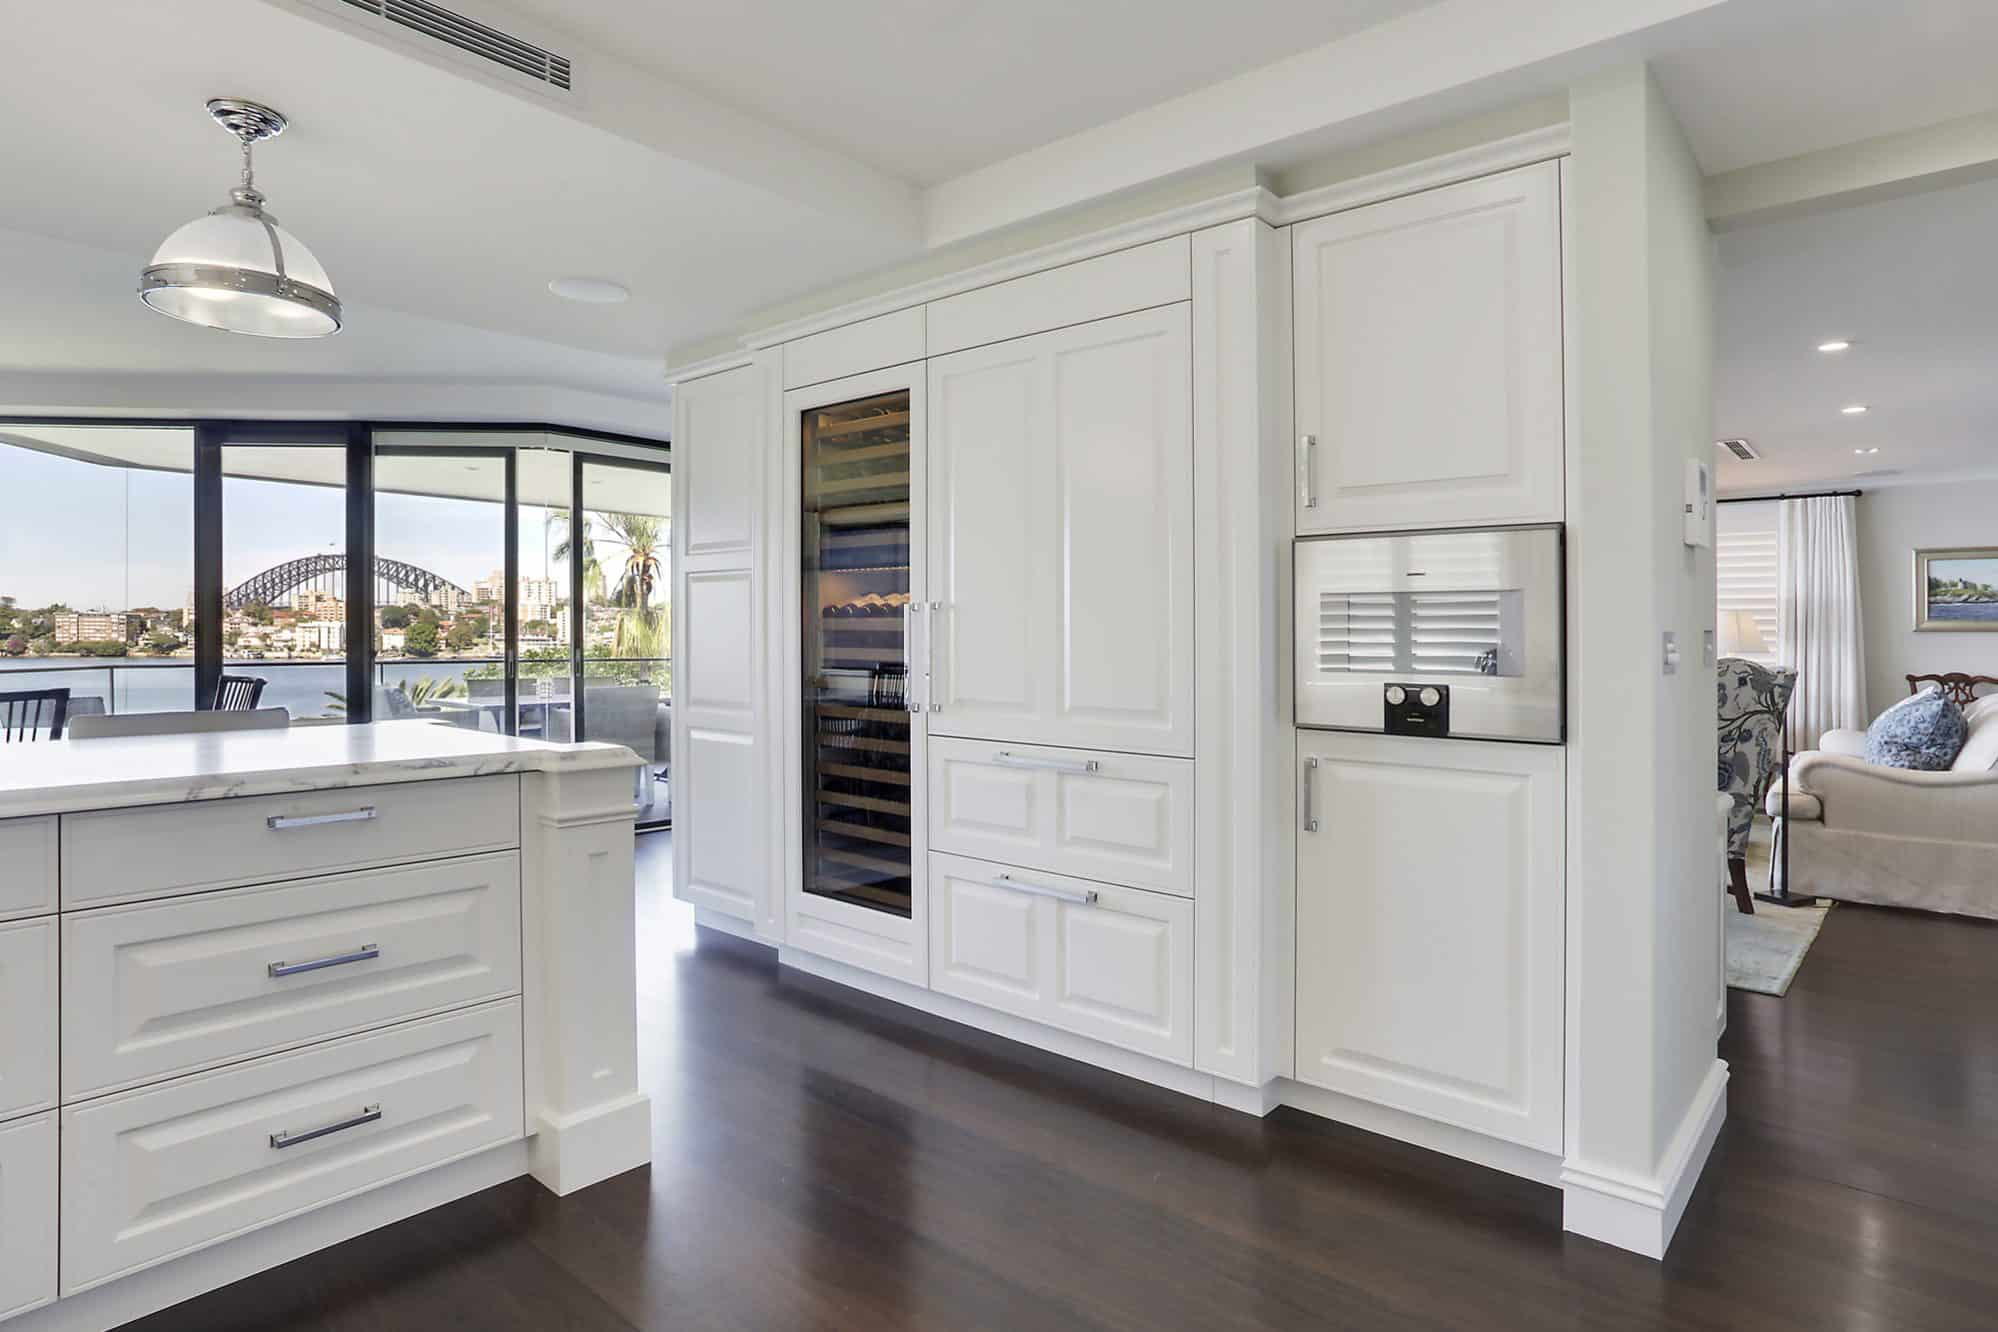 Kitchen cabinetry housing wine storage, integrated fridge and steamer